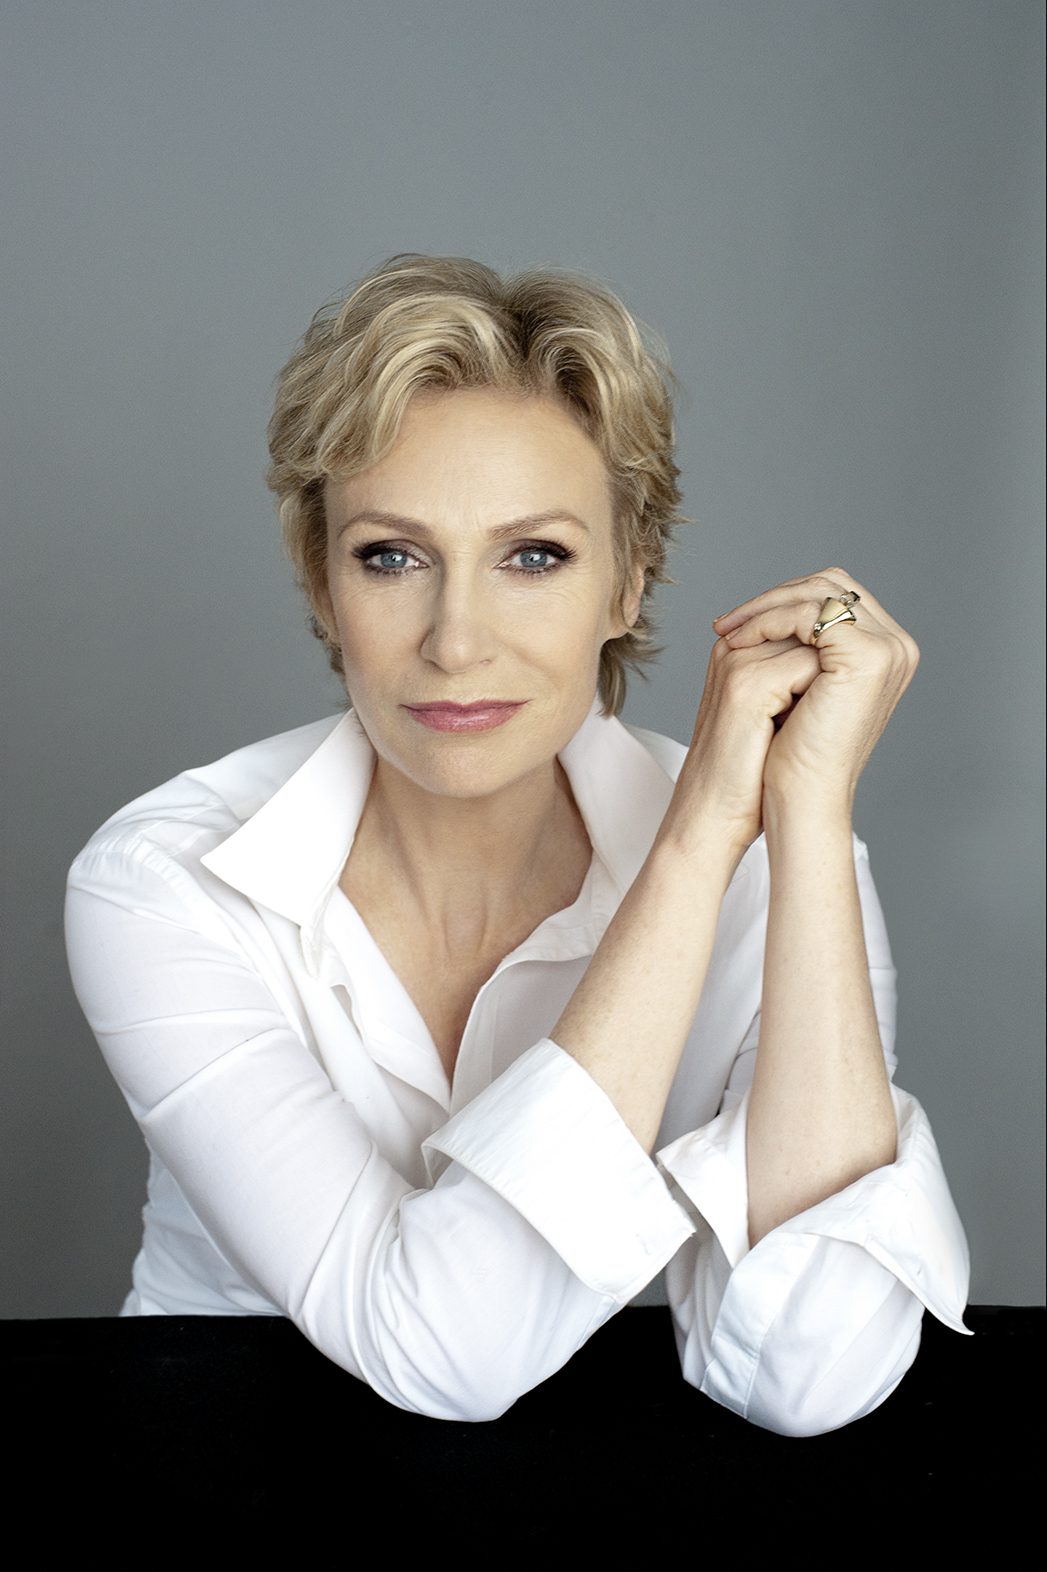 Jane Lynch wears a collared white shirt and poses with her arms folded next to her face